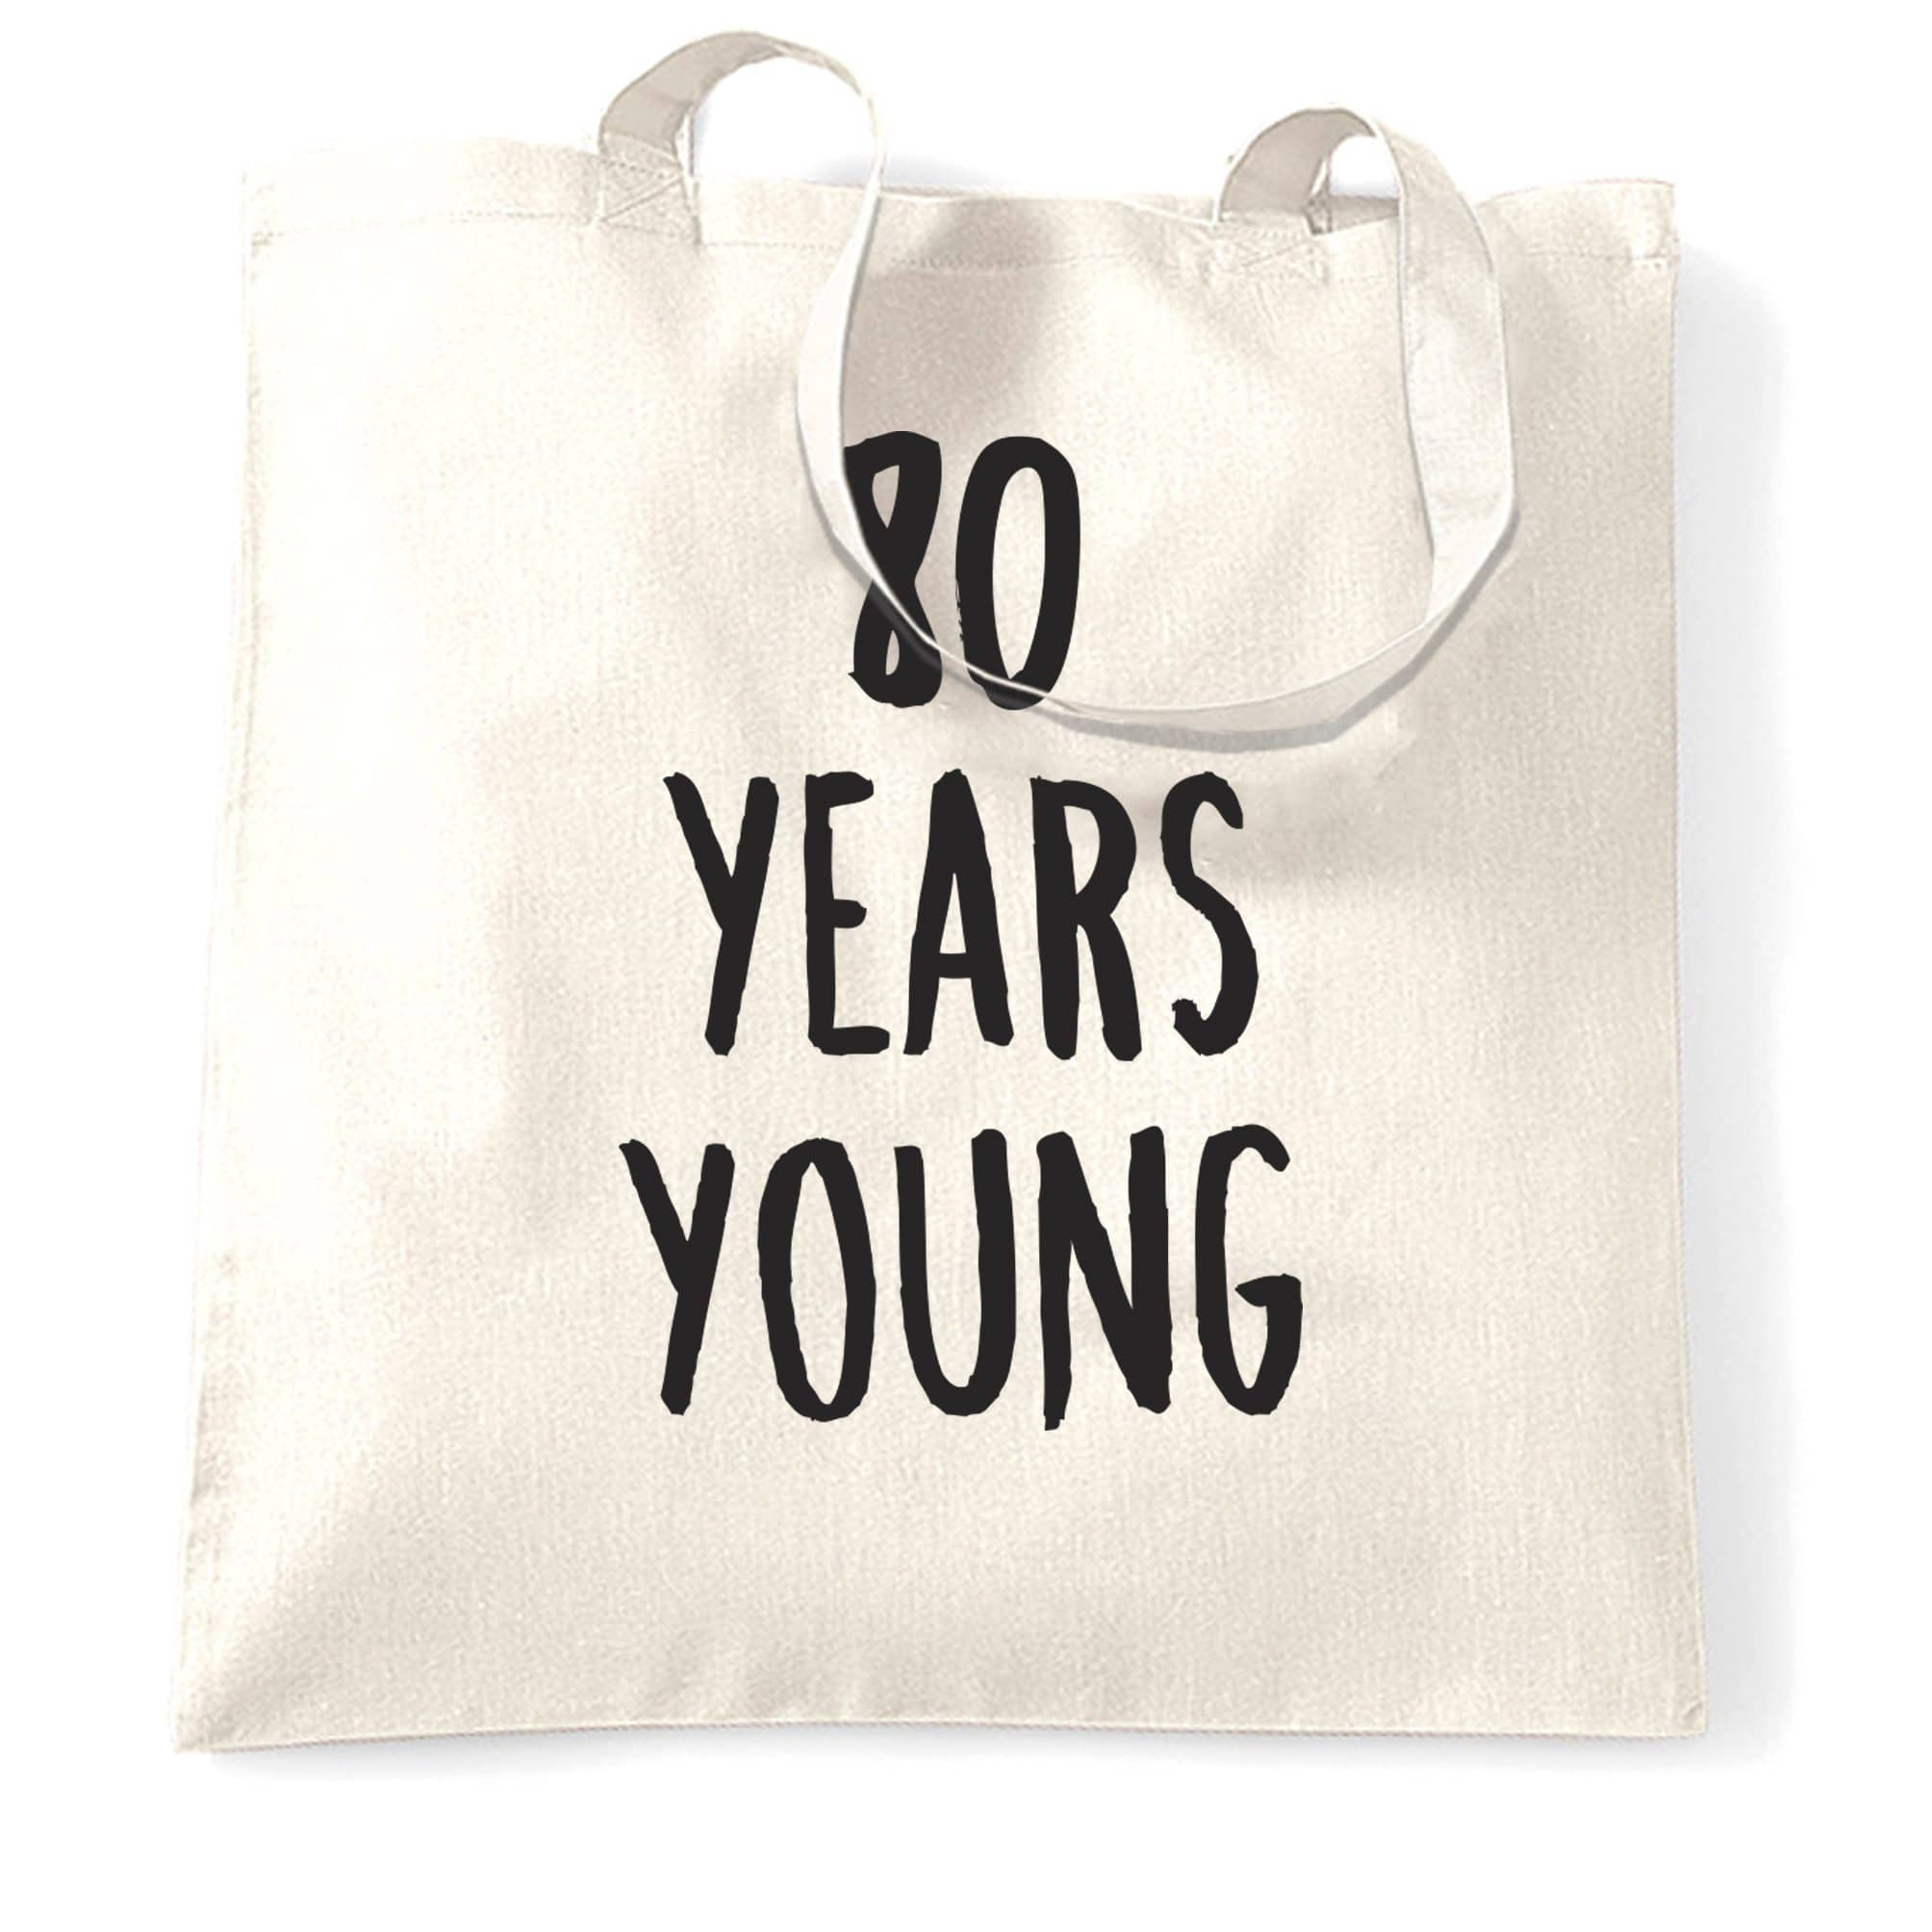 80th Birthday Joke Tote Bag 80 Years Young Novelty Text